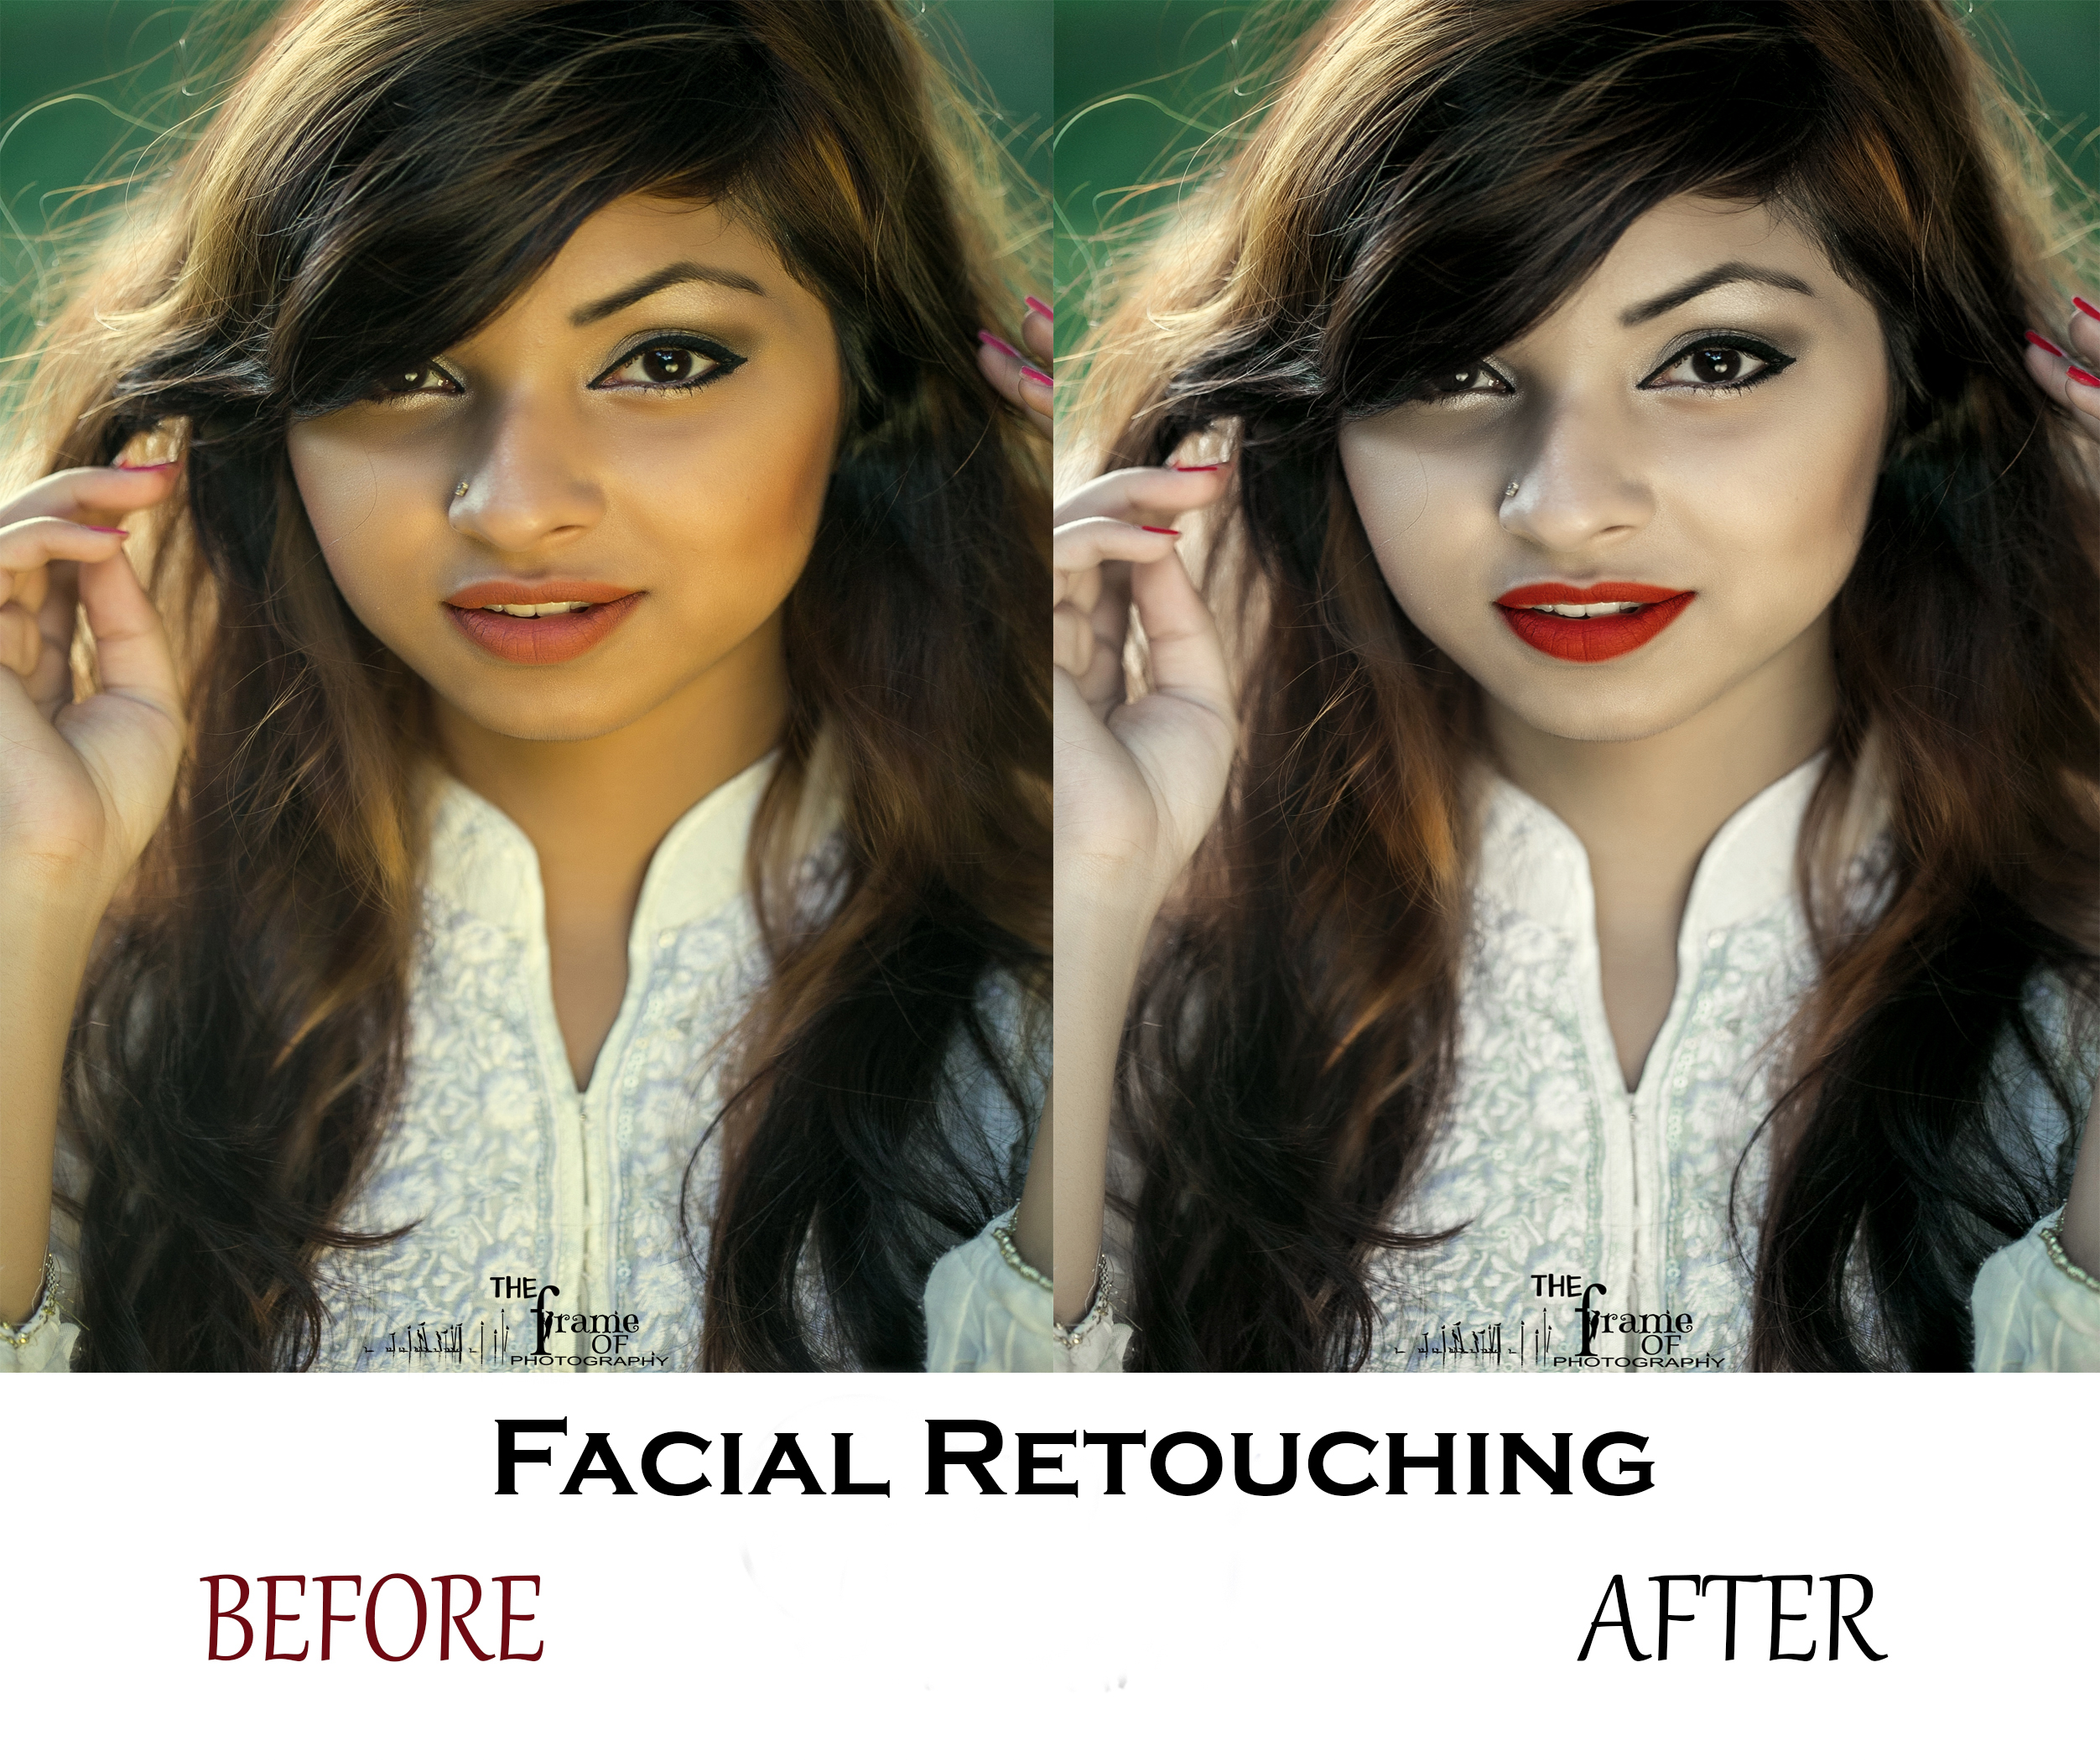 I will do any type of photoshop edit works within 2 hour